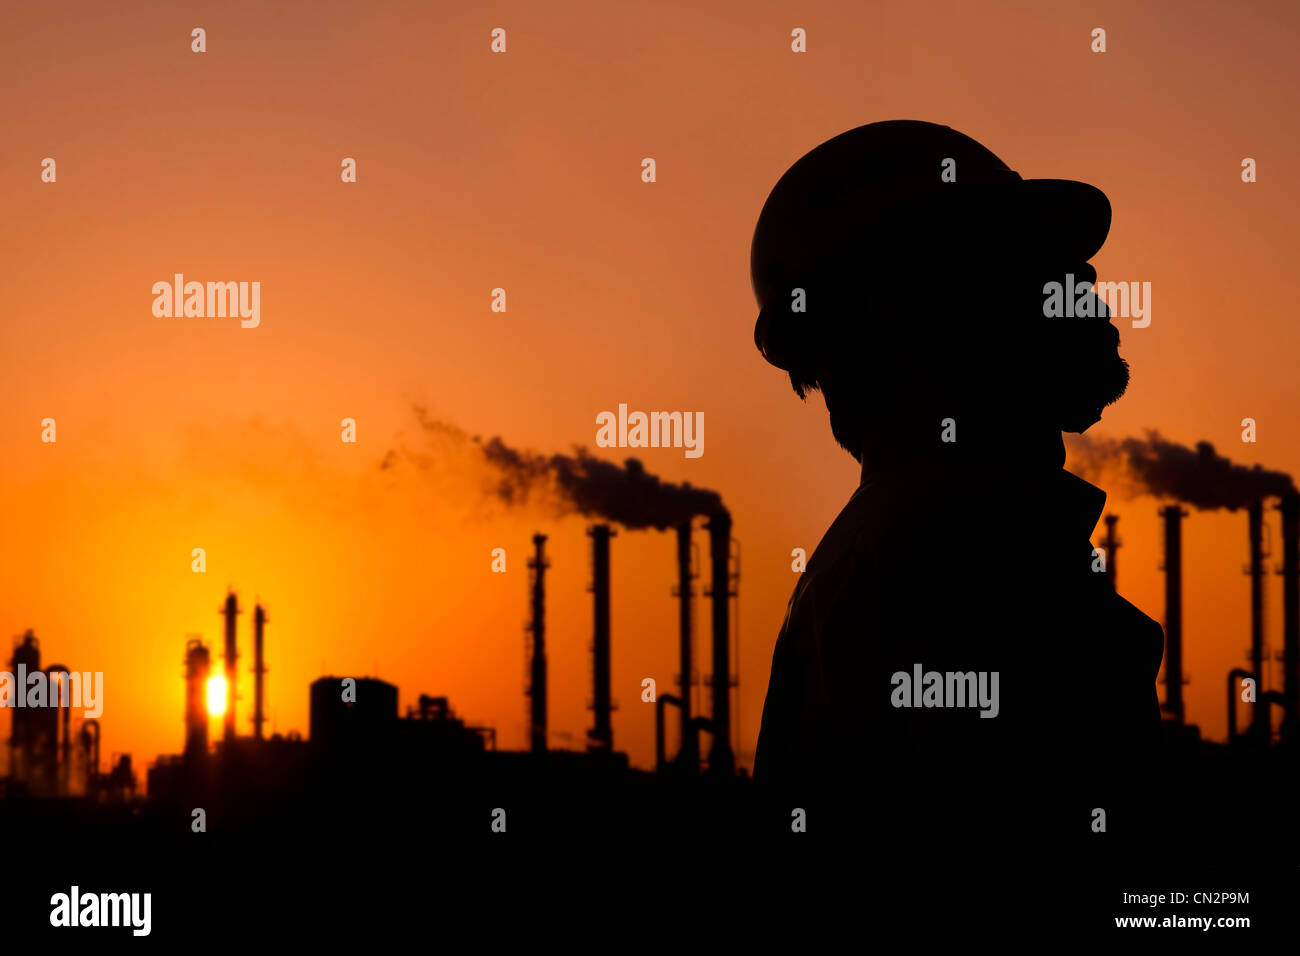 the silhouette of oil refinery worker at sunset - Stock Image